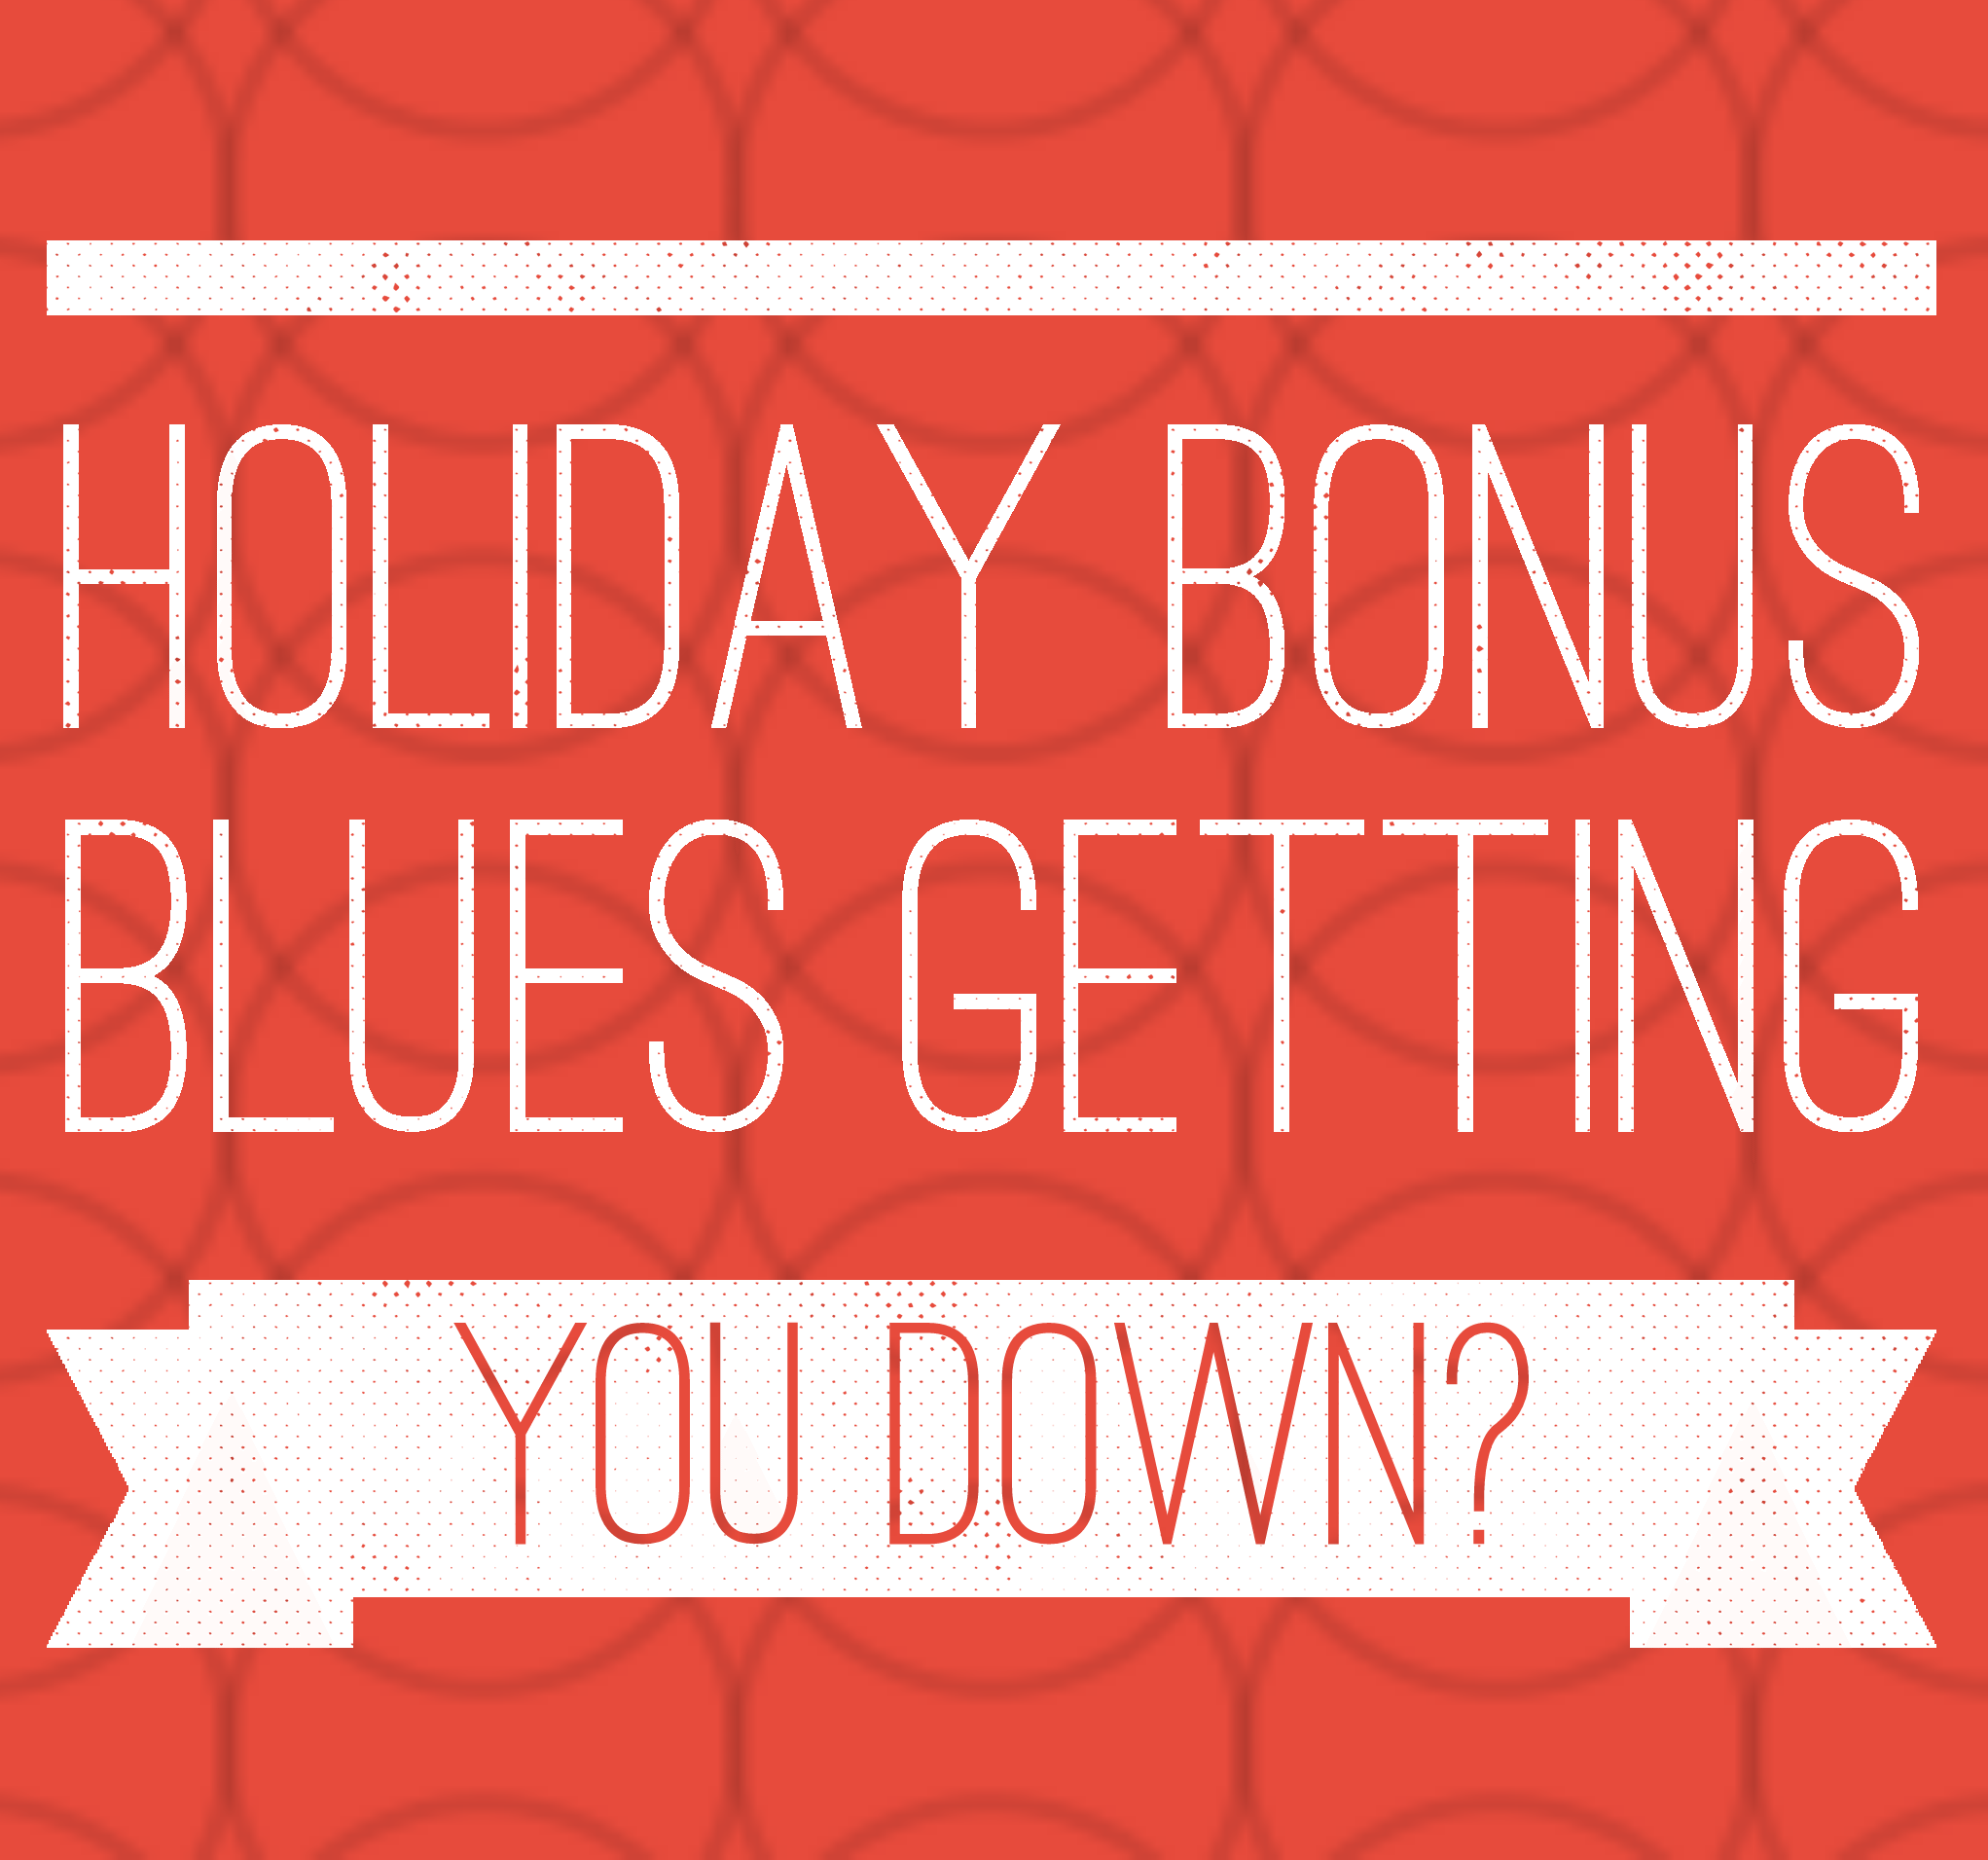 Holiday Bonuses Getting You Down?